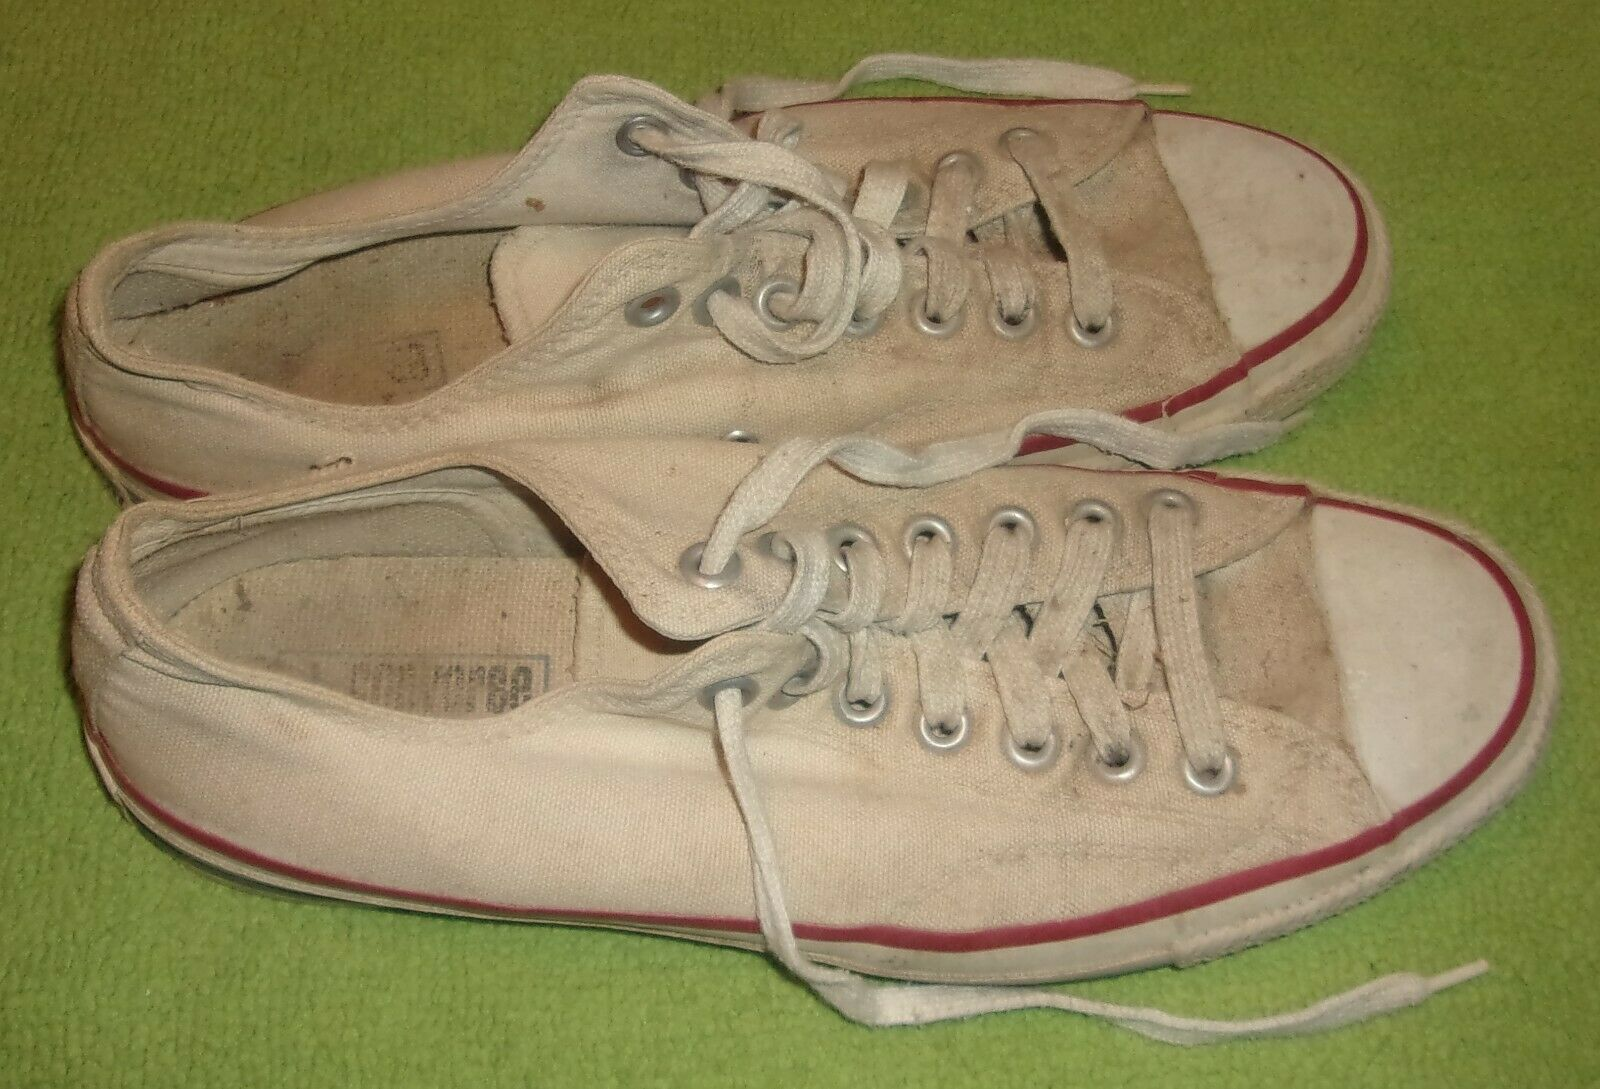 Antique Années 1940 homme Converse All Star Chaussures Taille 9 ORIGINAL à collectionner Display